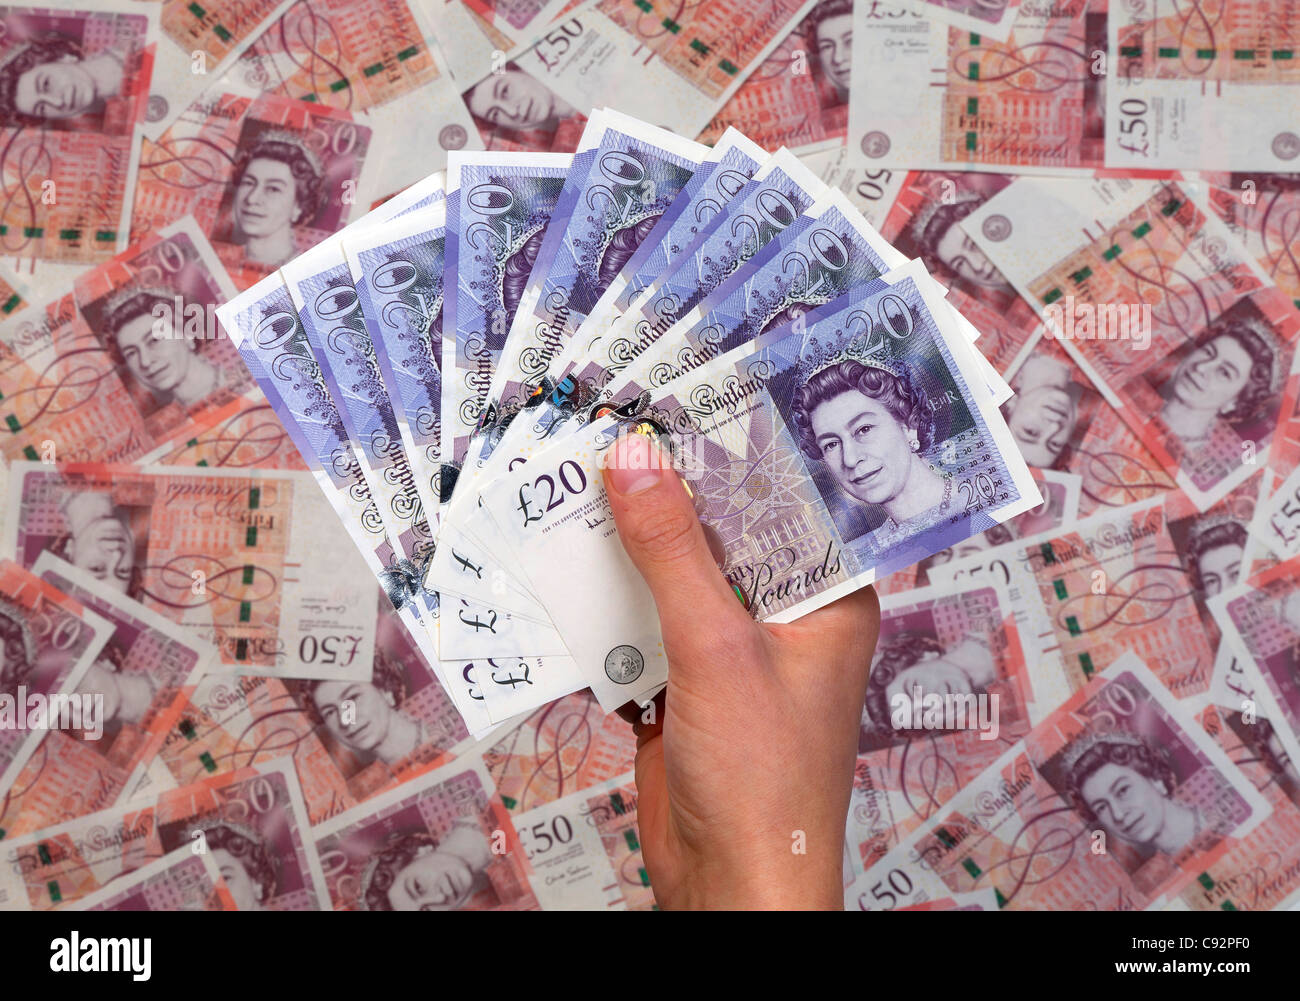 Payday loans for $100.00 image 7